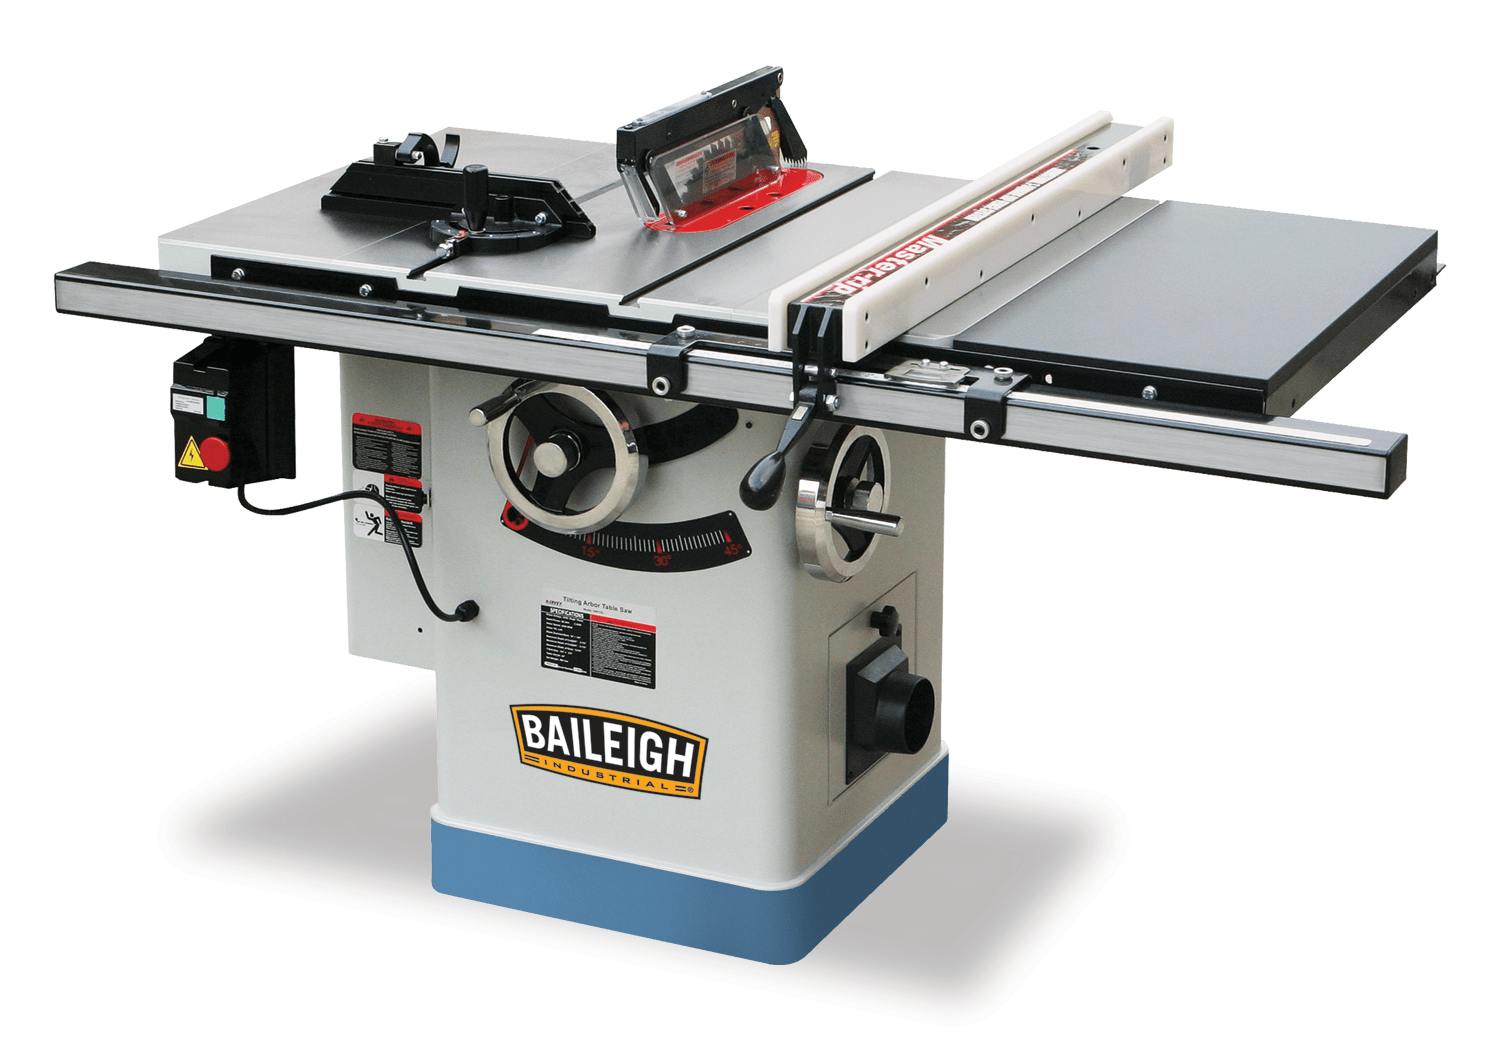 Baileigh Table Saw